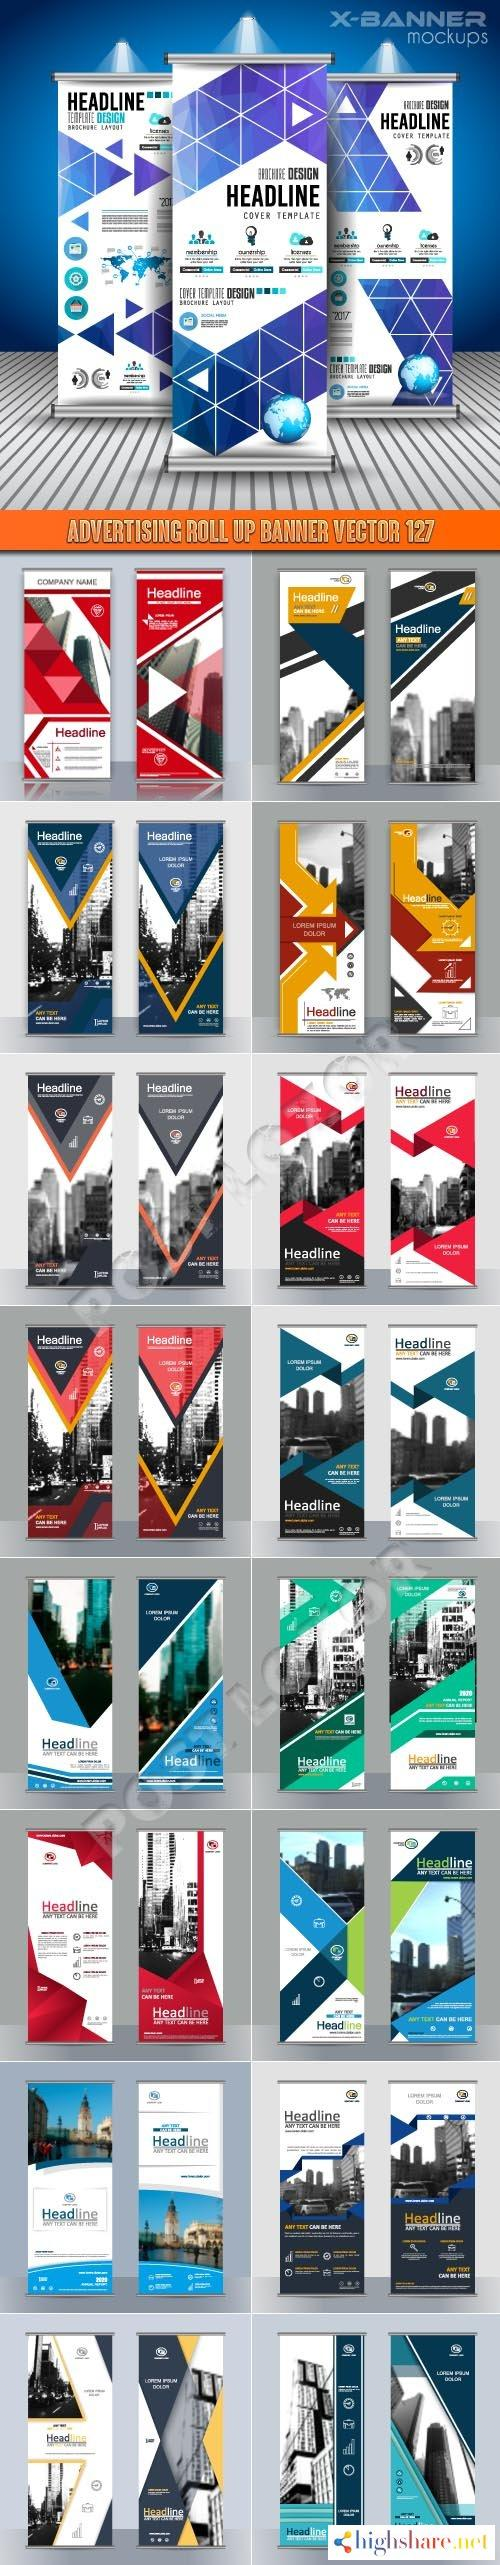 advertising roll up banner vector 127 5f3fb9b7a80a0 - Advertising Roll up banner vector 127